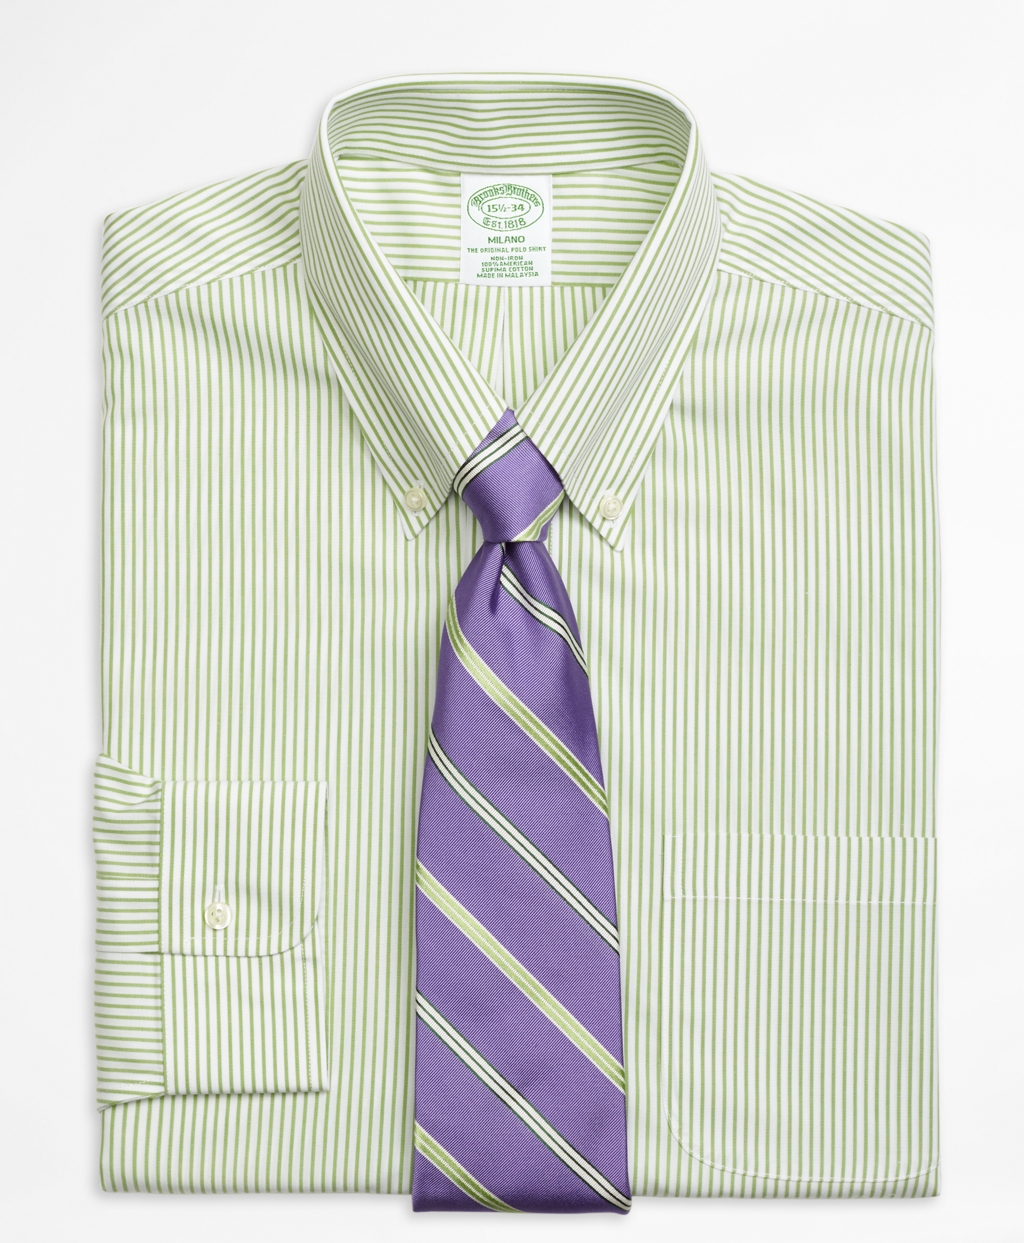 Brooks brothers non iron milano fit wide stripe dress for Brooks brothers non iron shirts review